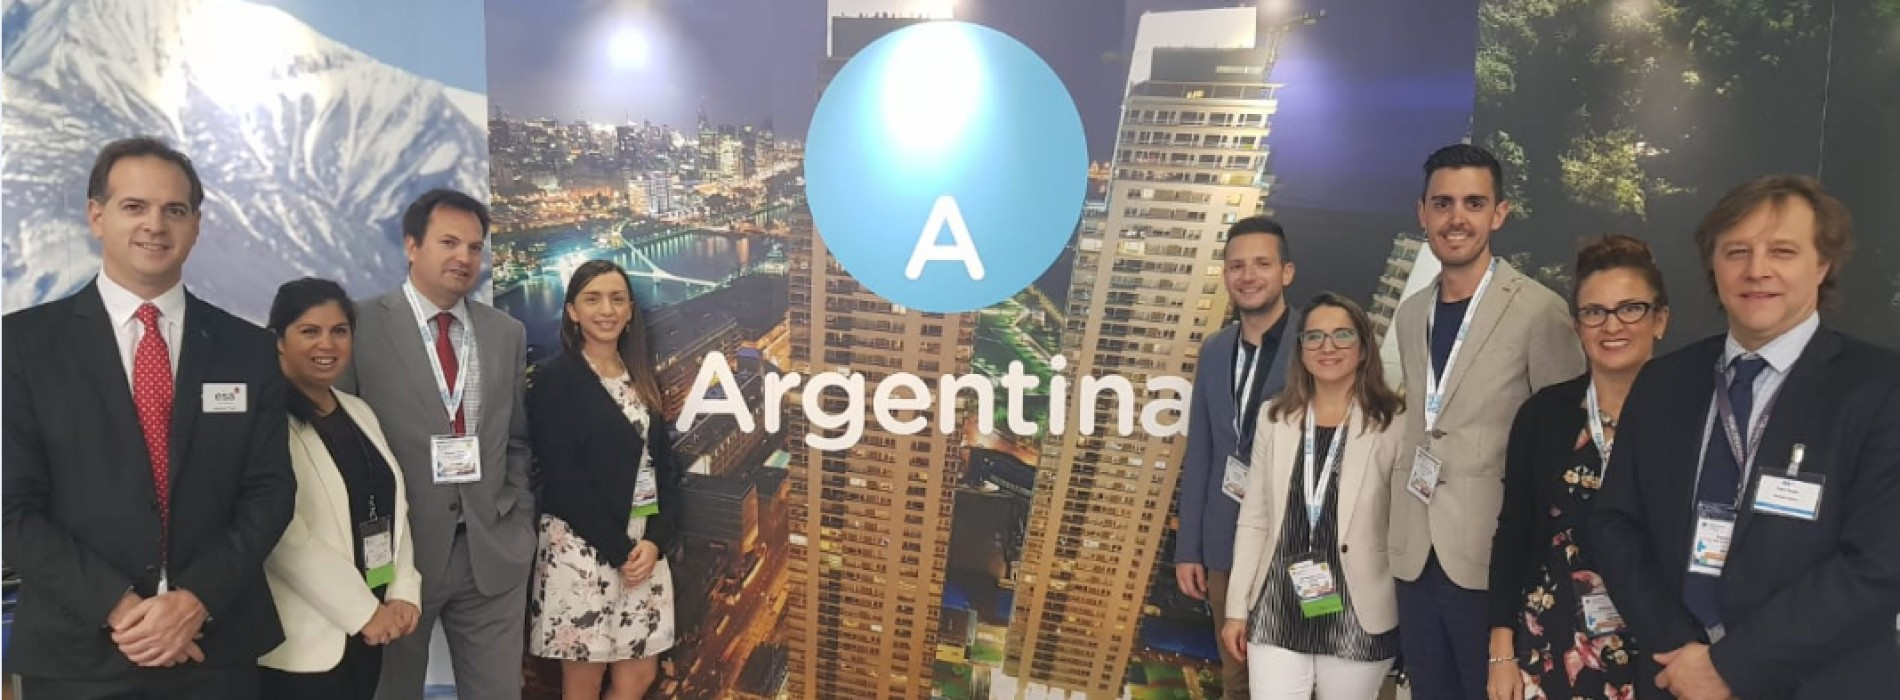 Argentina holds a presence at The Meetings Show